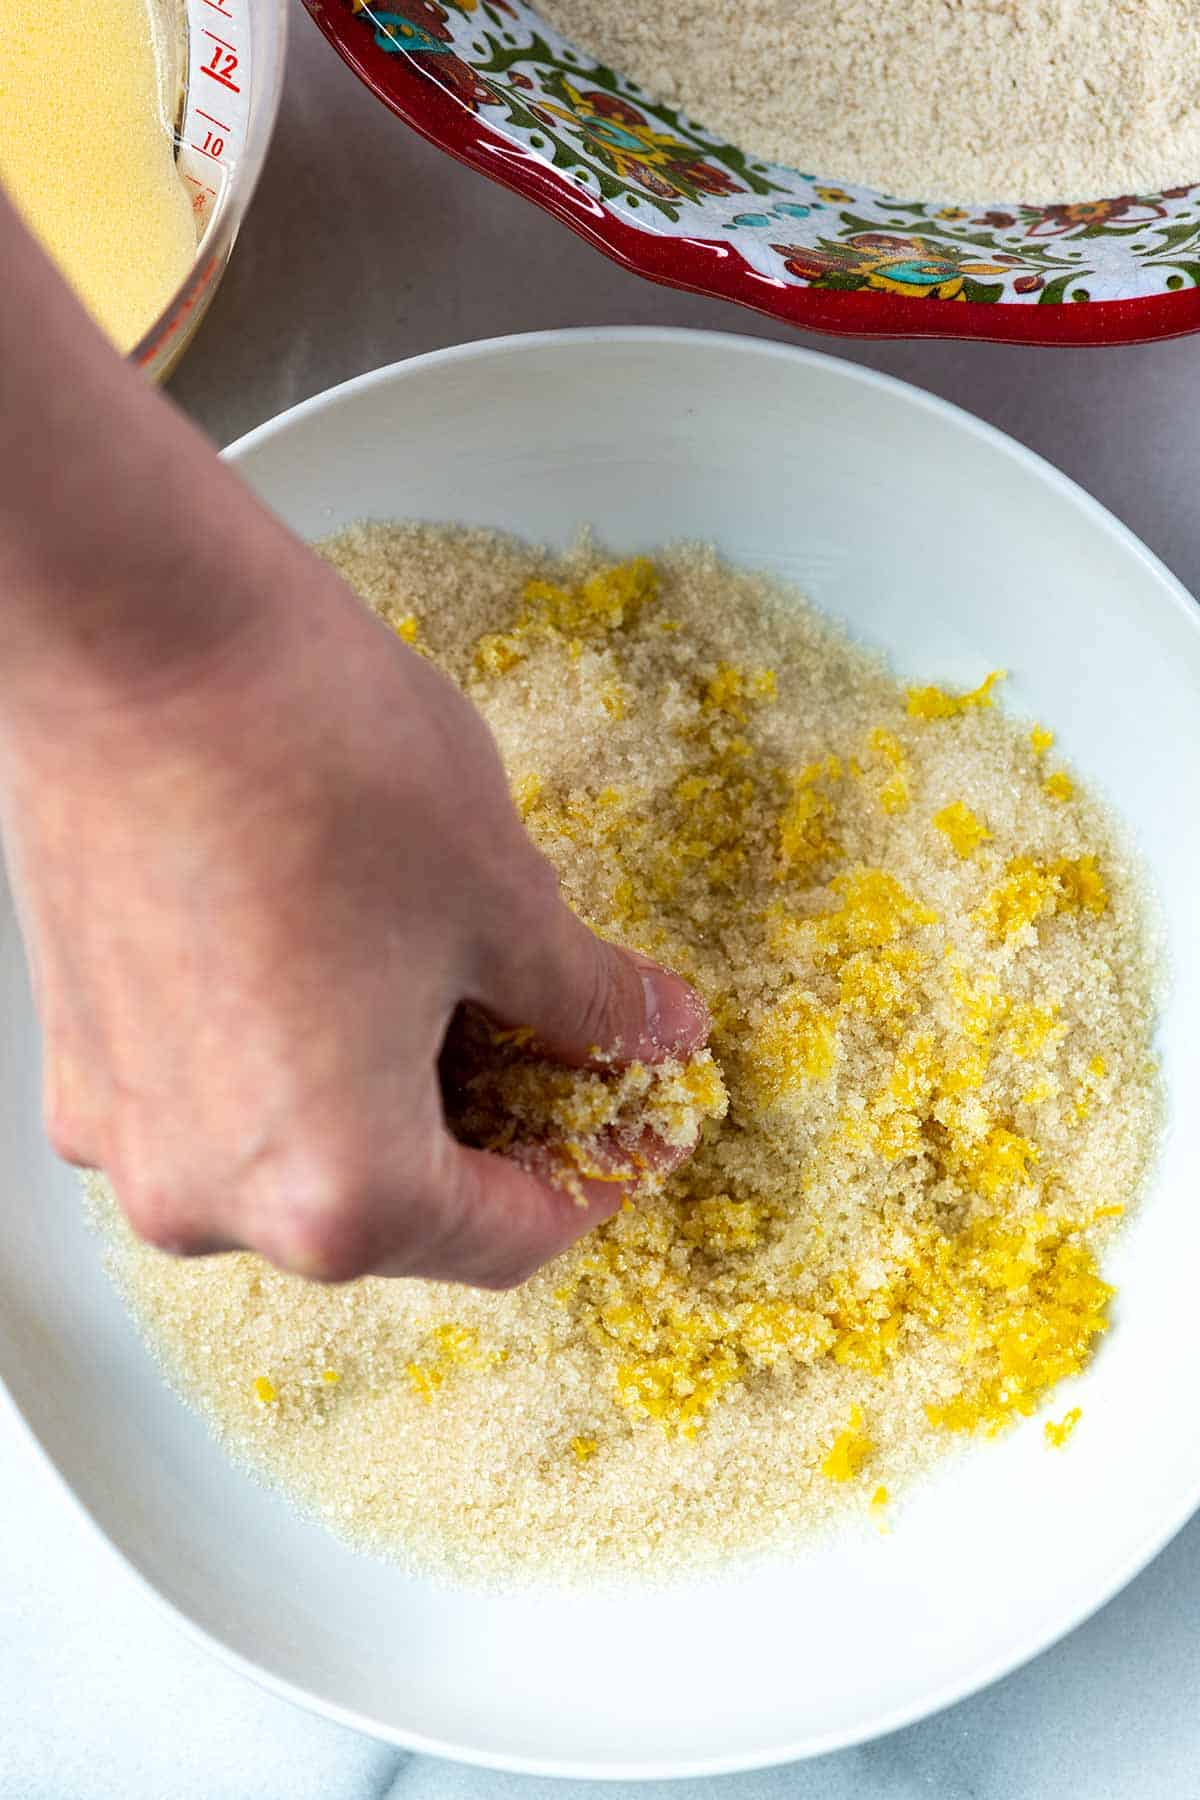 Making lemon sugar for the muffins by rubbing lemon zest into the sugar